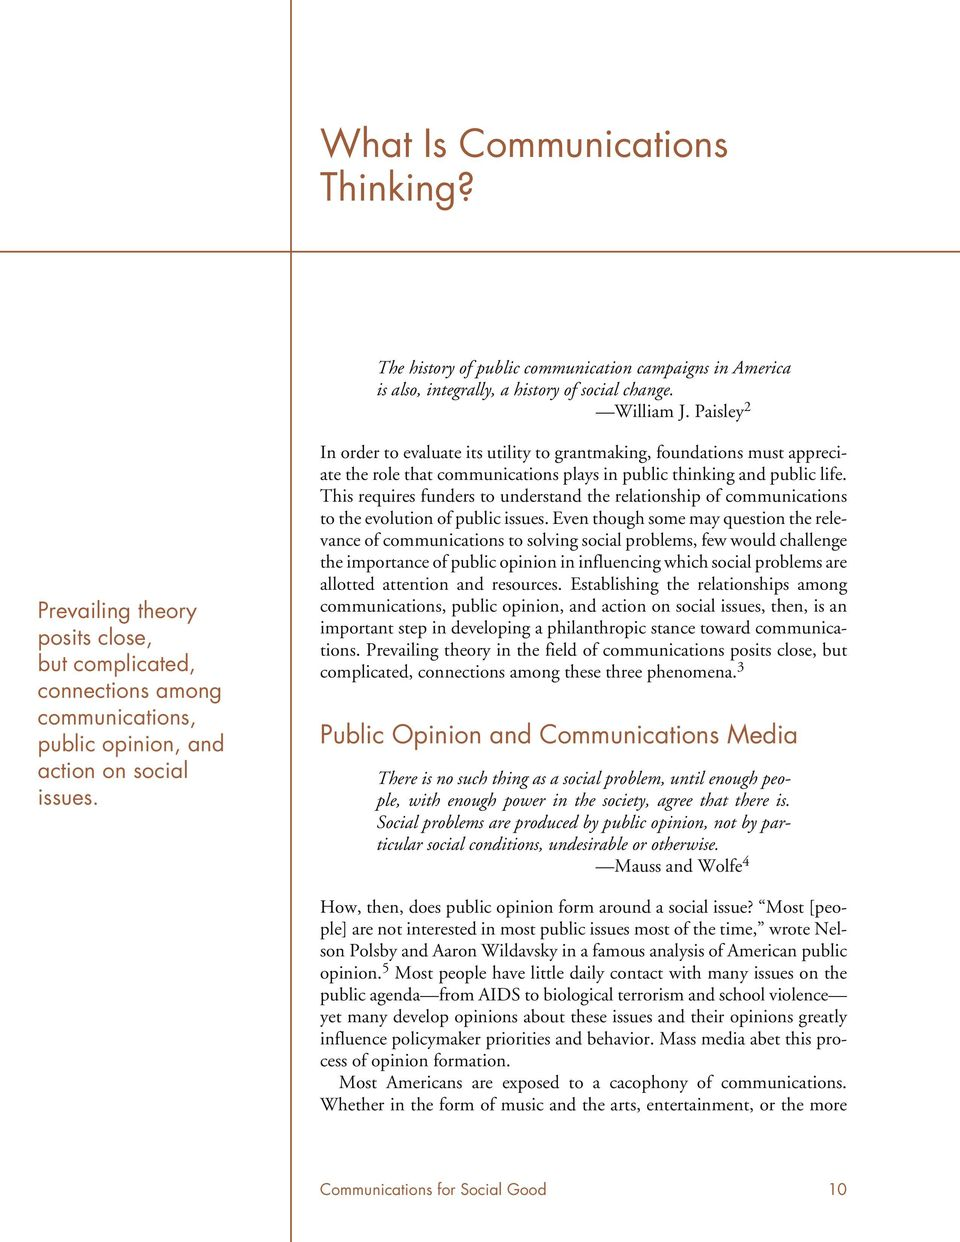 In order to evaluate its utility to grantmaking, foundations must appreciate the role that communications plays in public thinking and public life.